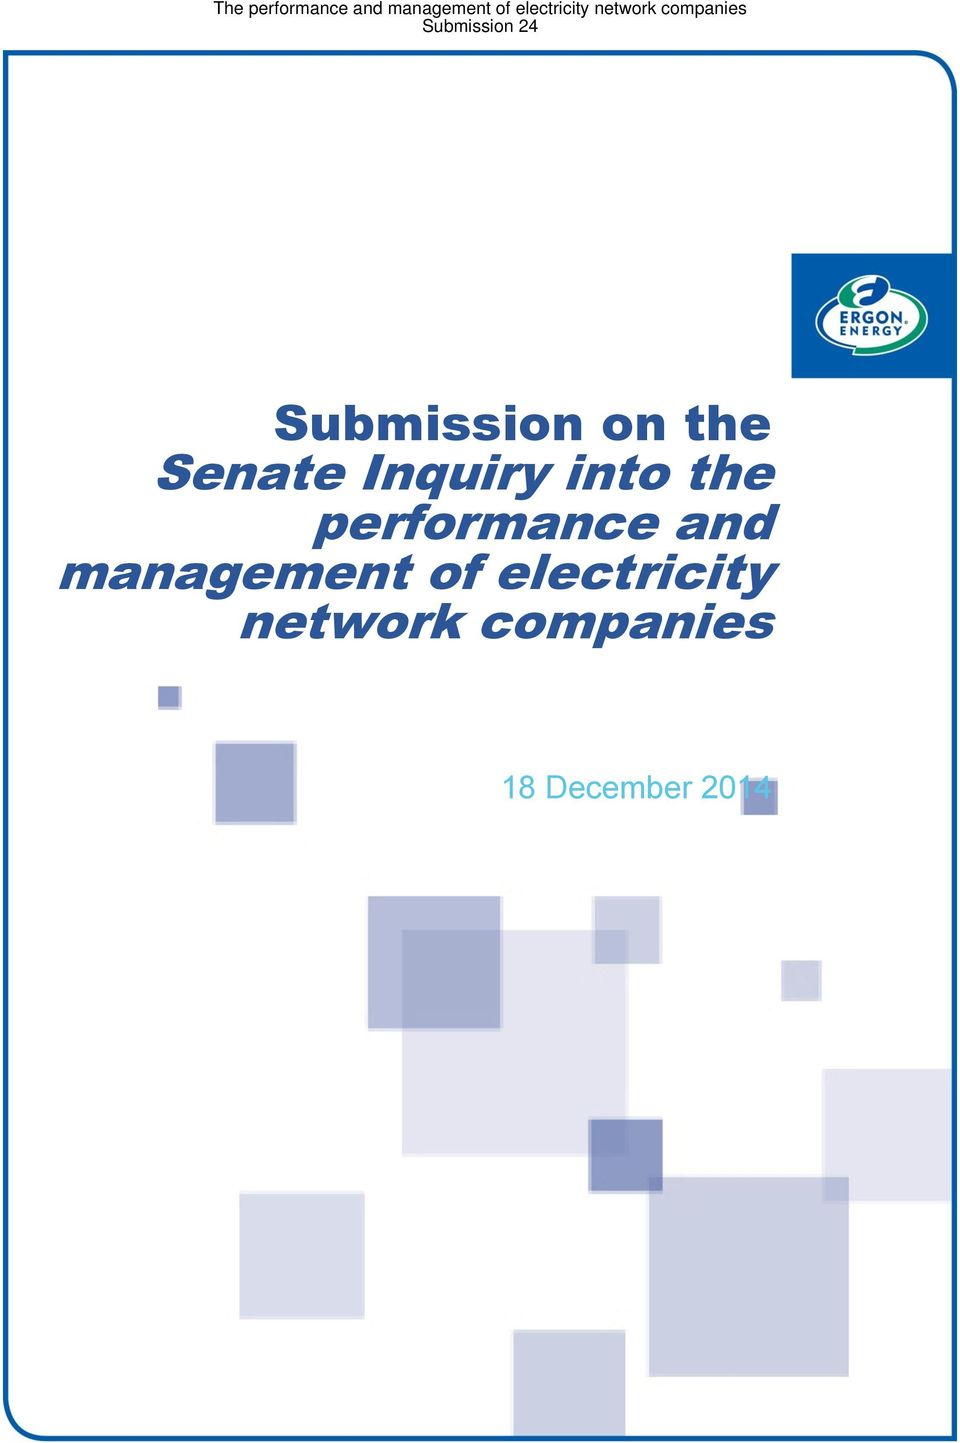 and management of electricity